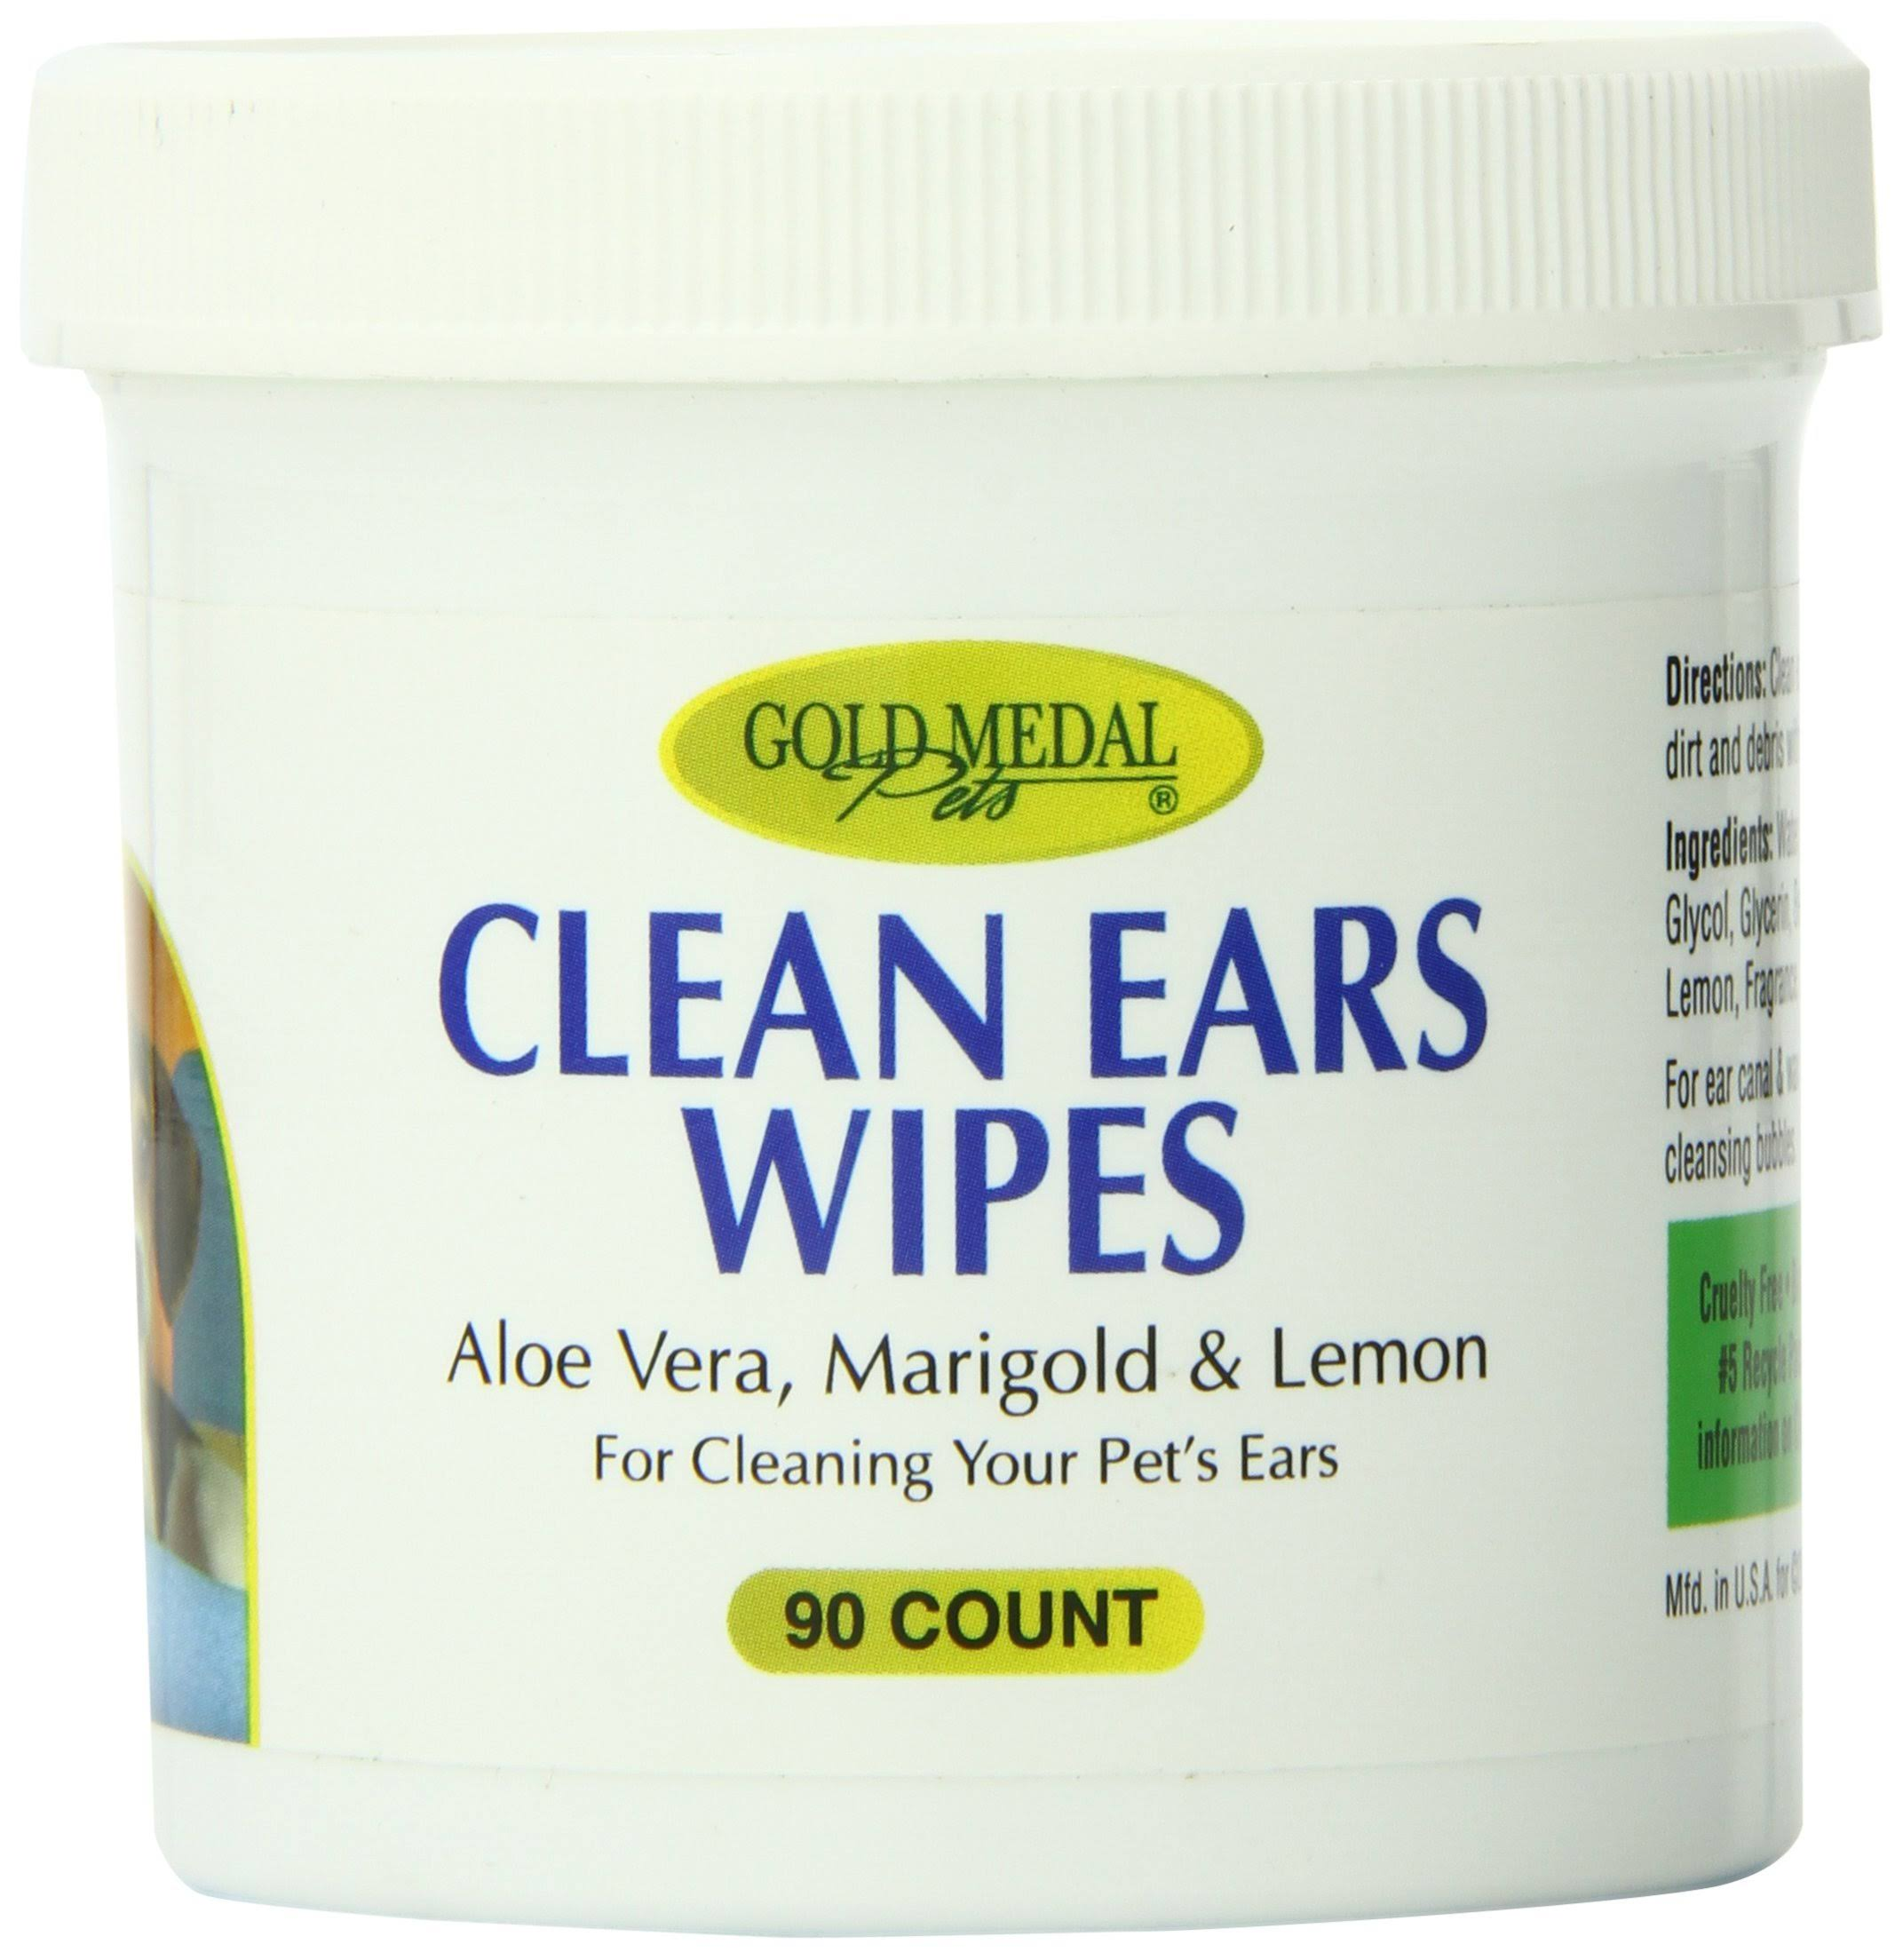 Gold Medal Pets Clean Ears Wipes for Dogs and Cats 90 Count